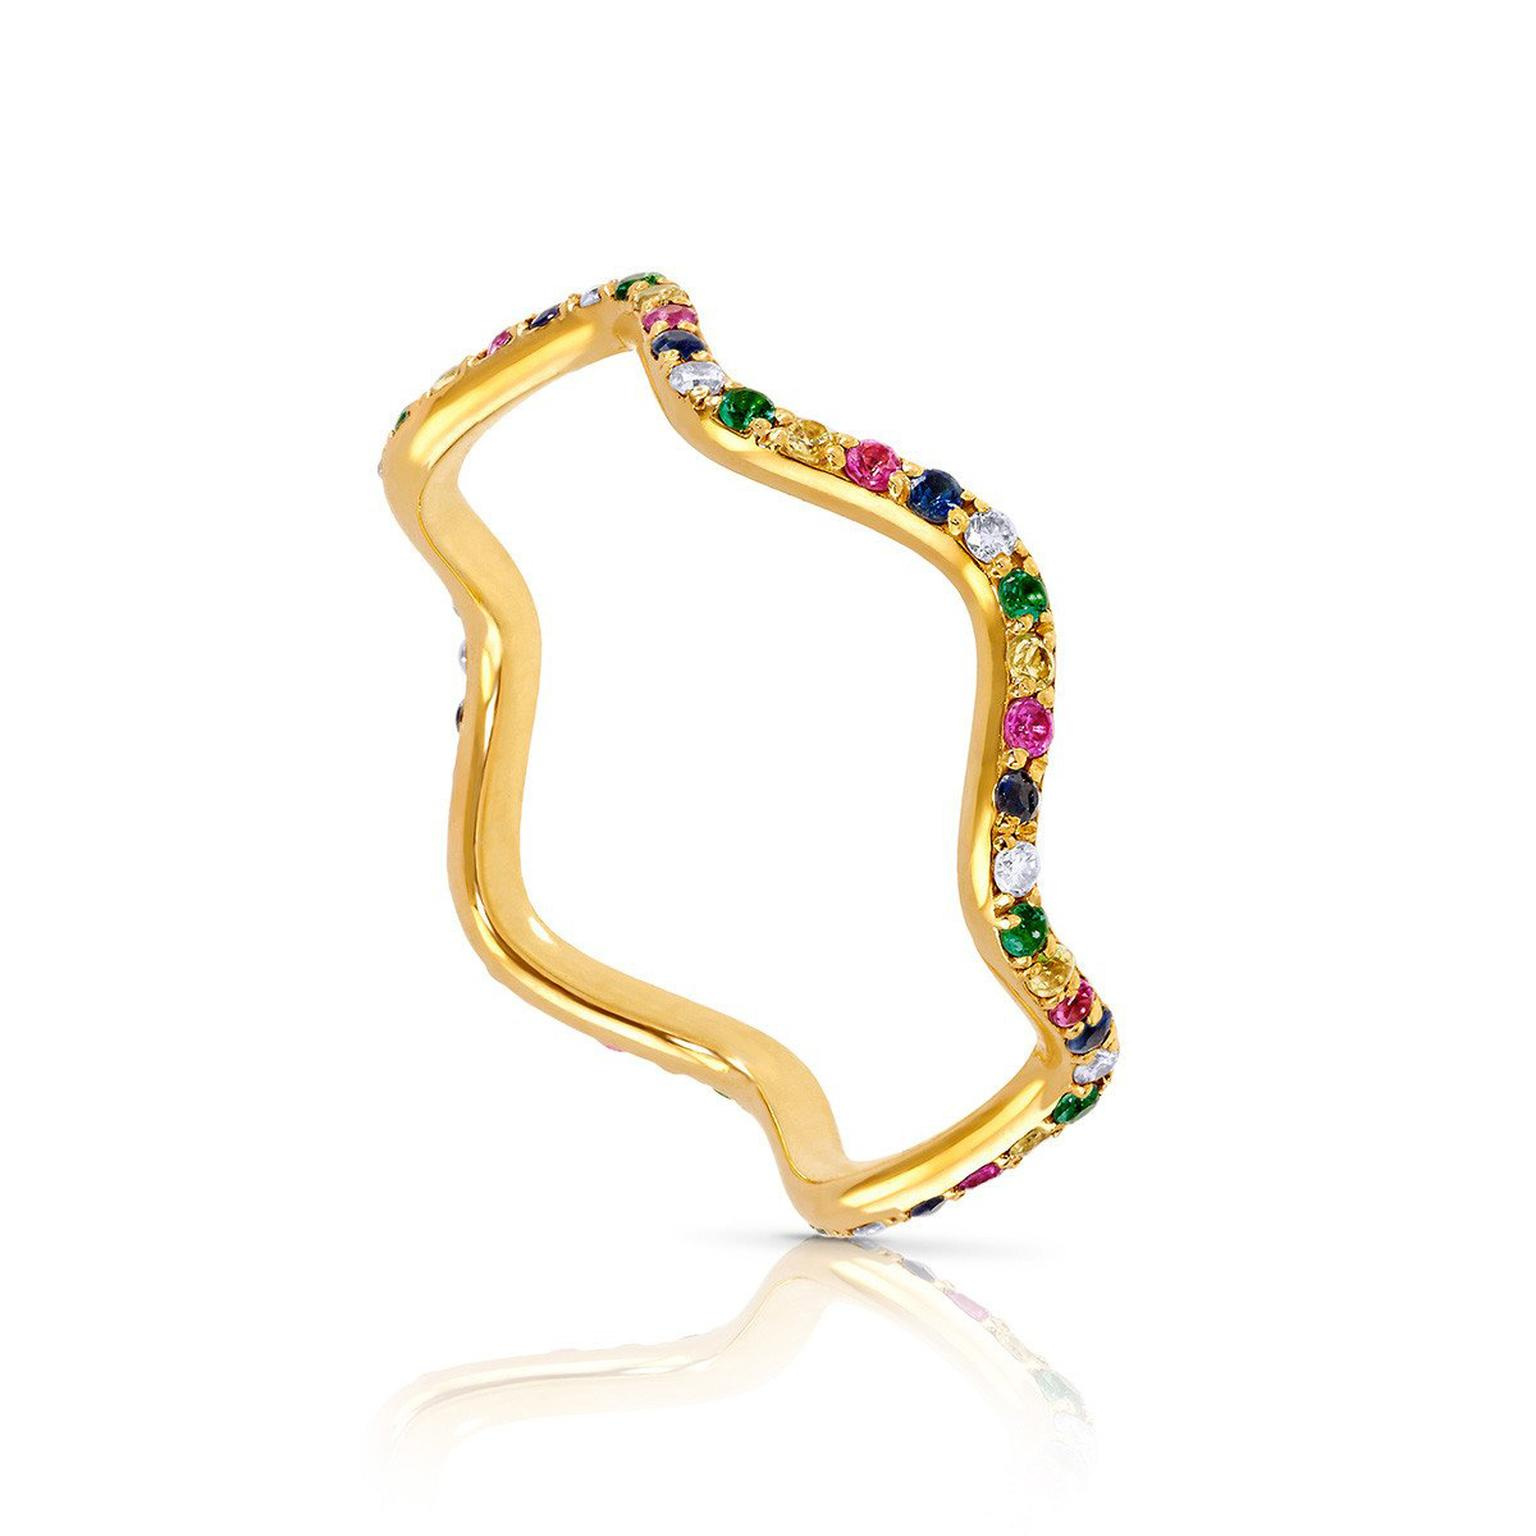 Sabine Getty Baby Memphis Wave band with multi-coloured gemstones